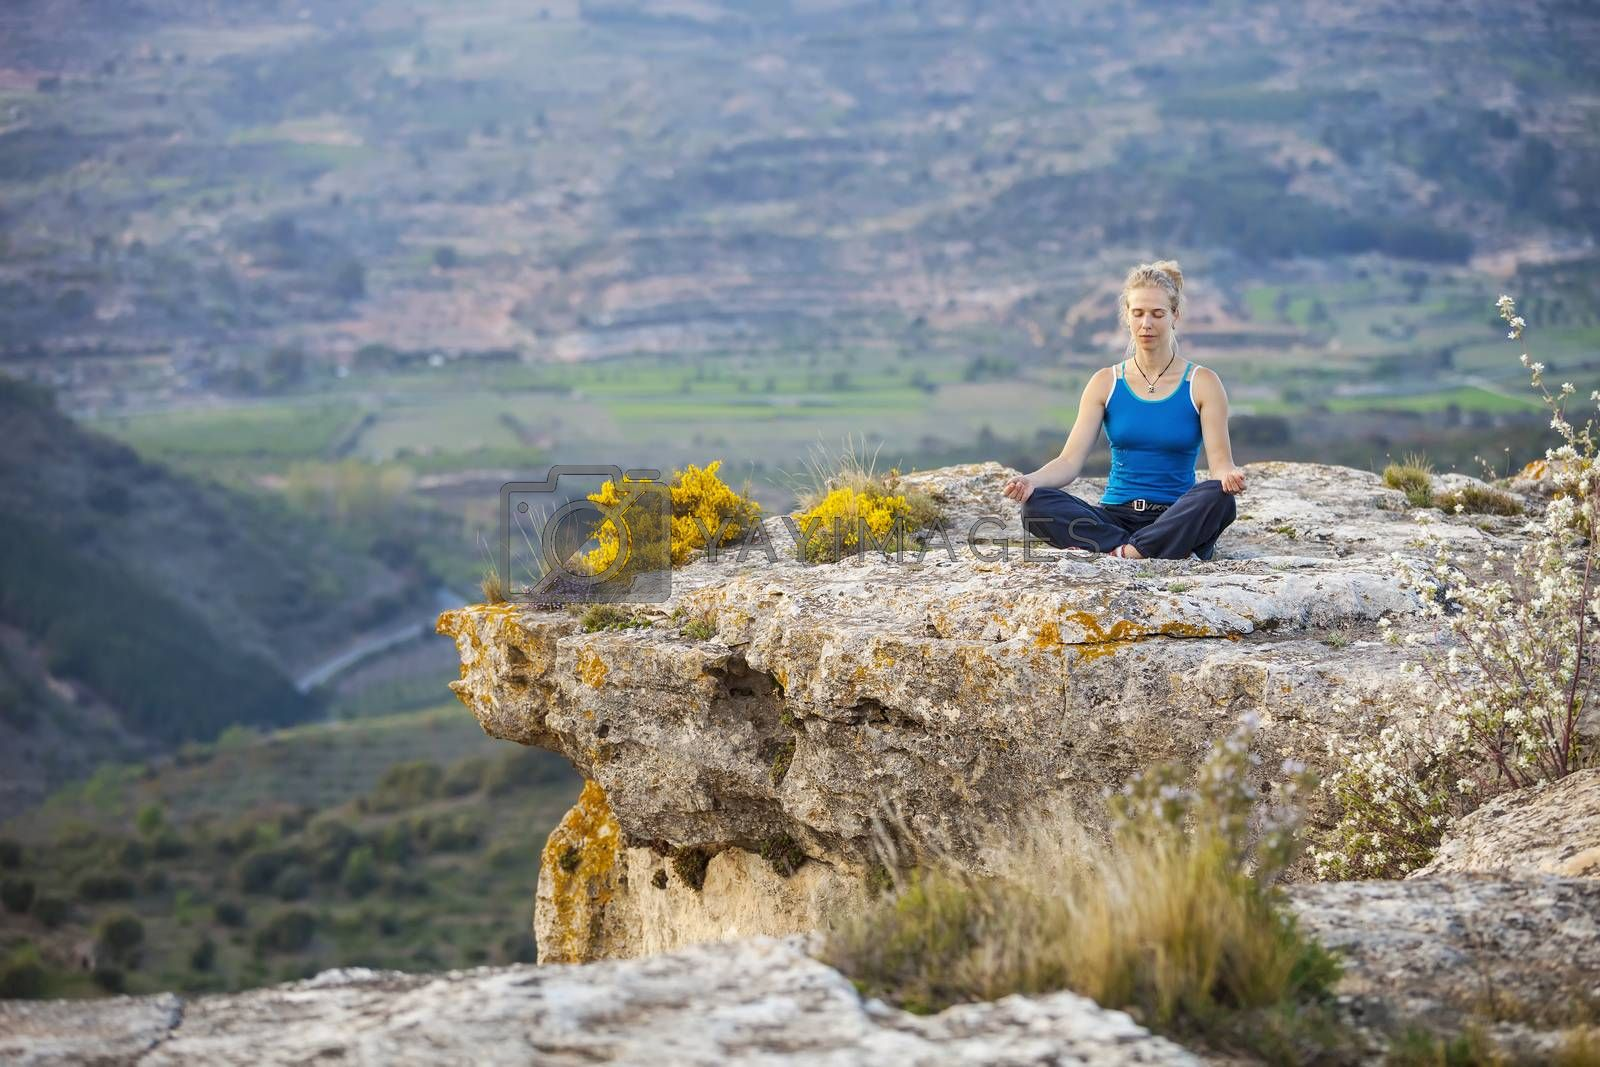 Young woman sitting on a rock and enjoying valley view. Girl sits in asana position.